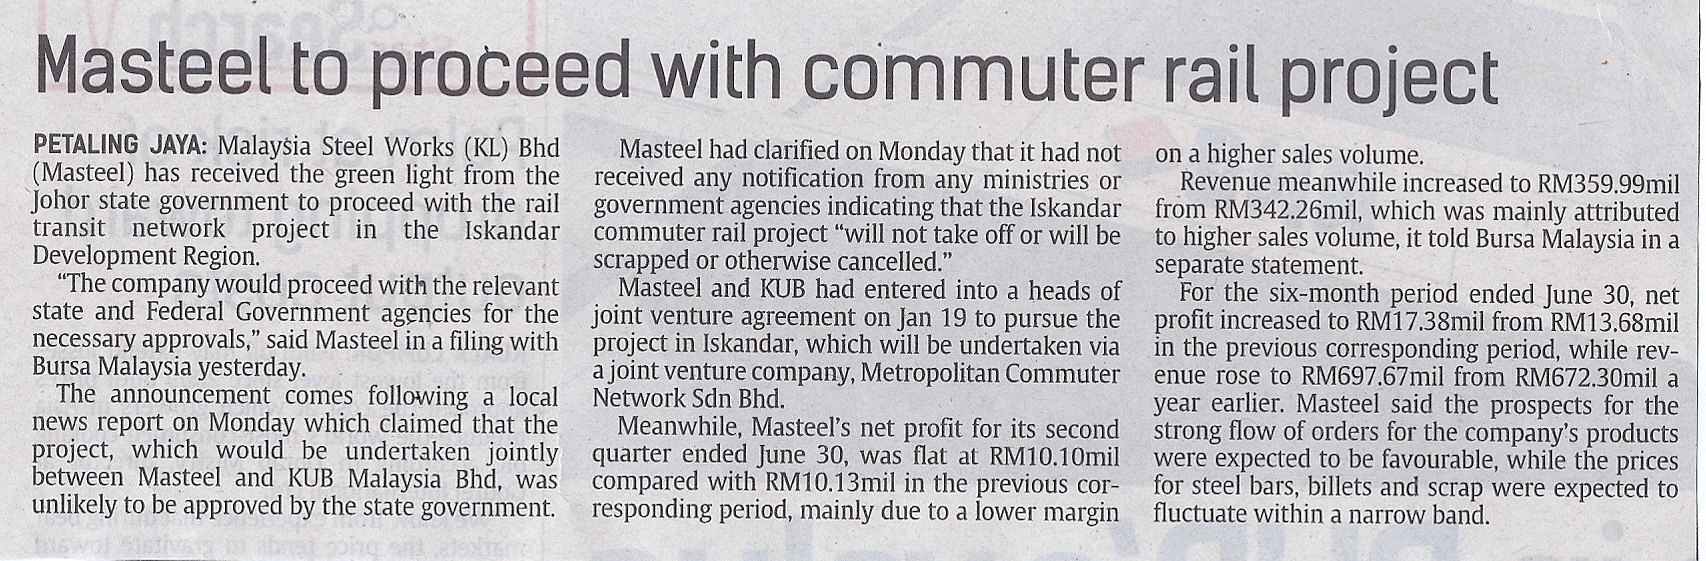 Masteel to proceed with commuter rail project